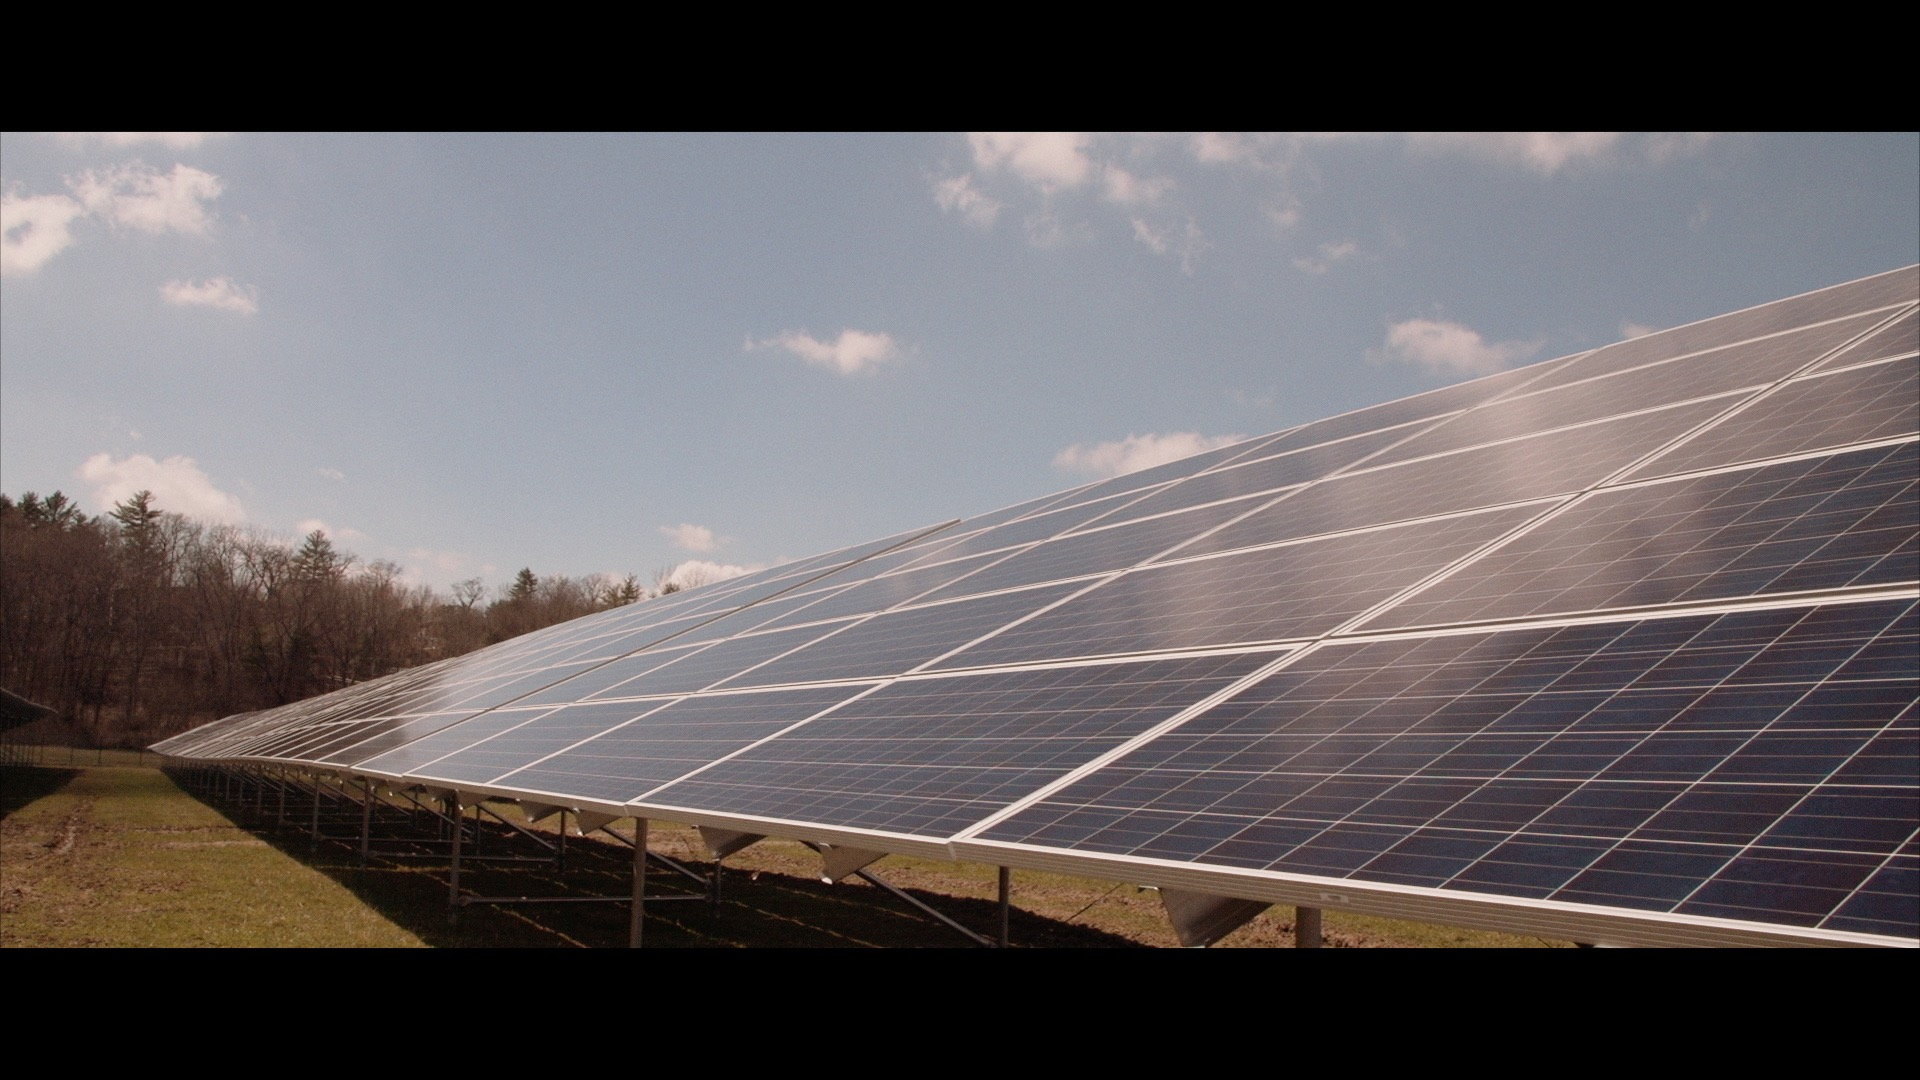 A screen grab of a shot we did of one of the rows of the array at Houghton College. Thanks to Borrego Solar, this solar array will be one of the largest solar arrays in an American college campus. Here, we set the FS700 filming a bit of a long shot on a tripod, so that we can speed it up in editing/post and capture the reflection of the clouds moving across the array. It's one simple way of adding interest to what typically can be a pretty cold mechanical shot, and it works really well for this perspective. We are also playing with lines to add a more dynamic and richer depth to this shot.